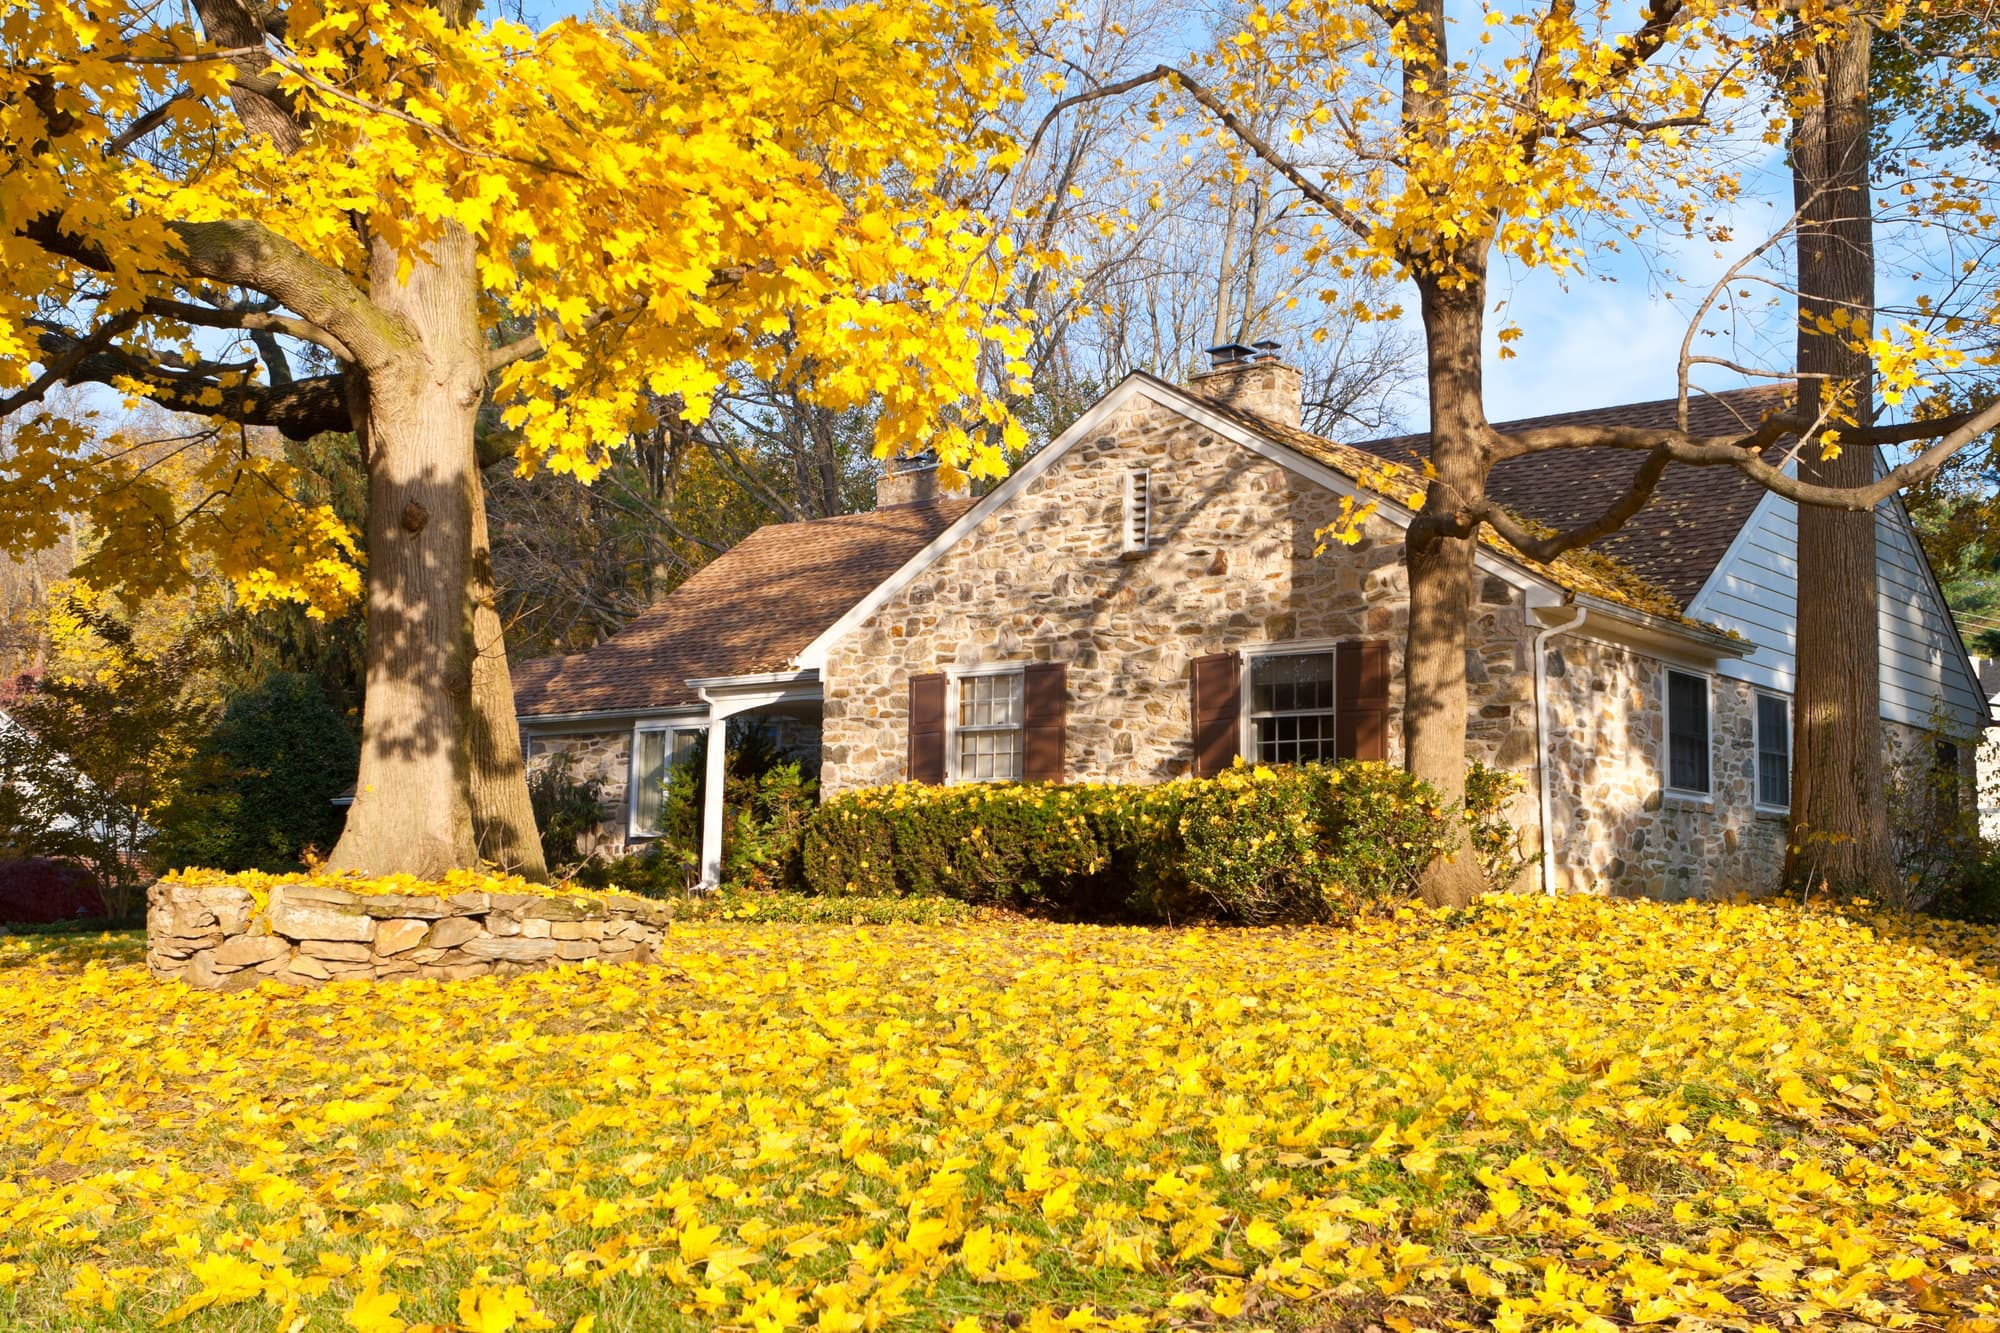 home exterior in fall with yellow leaves in yard